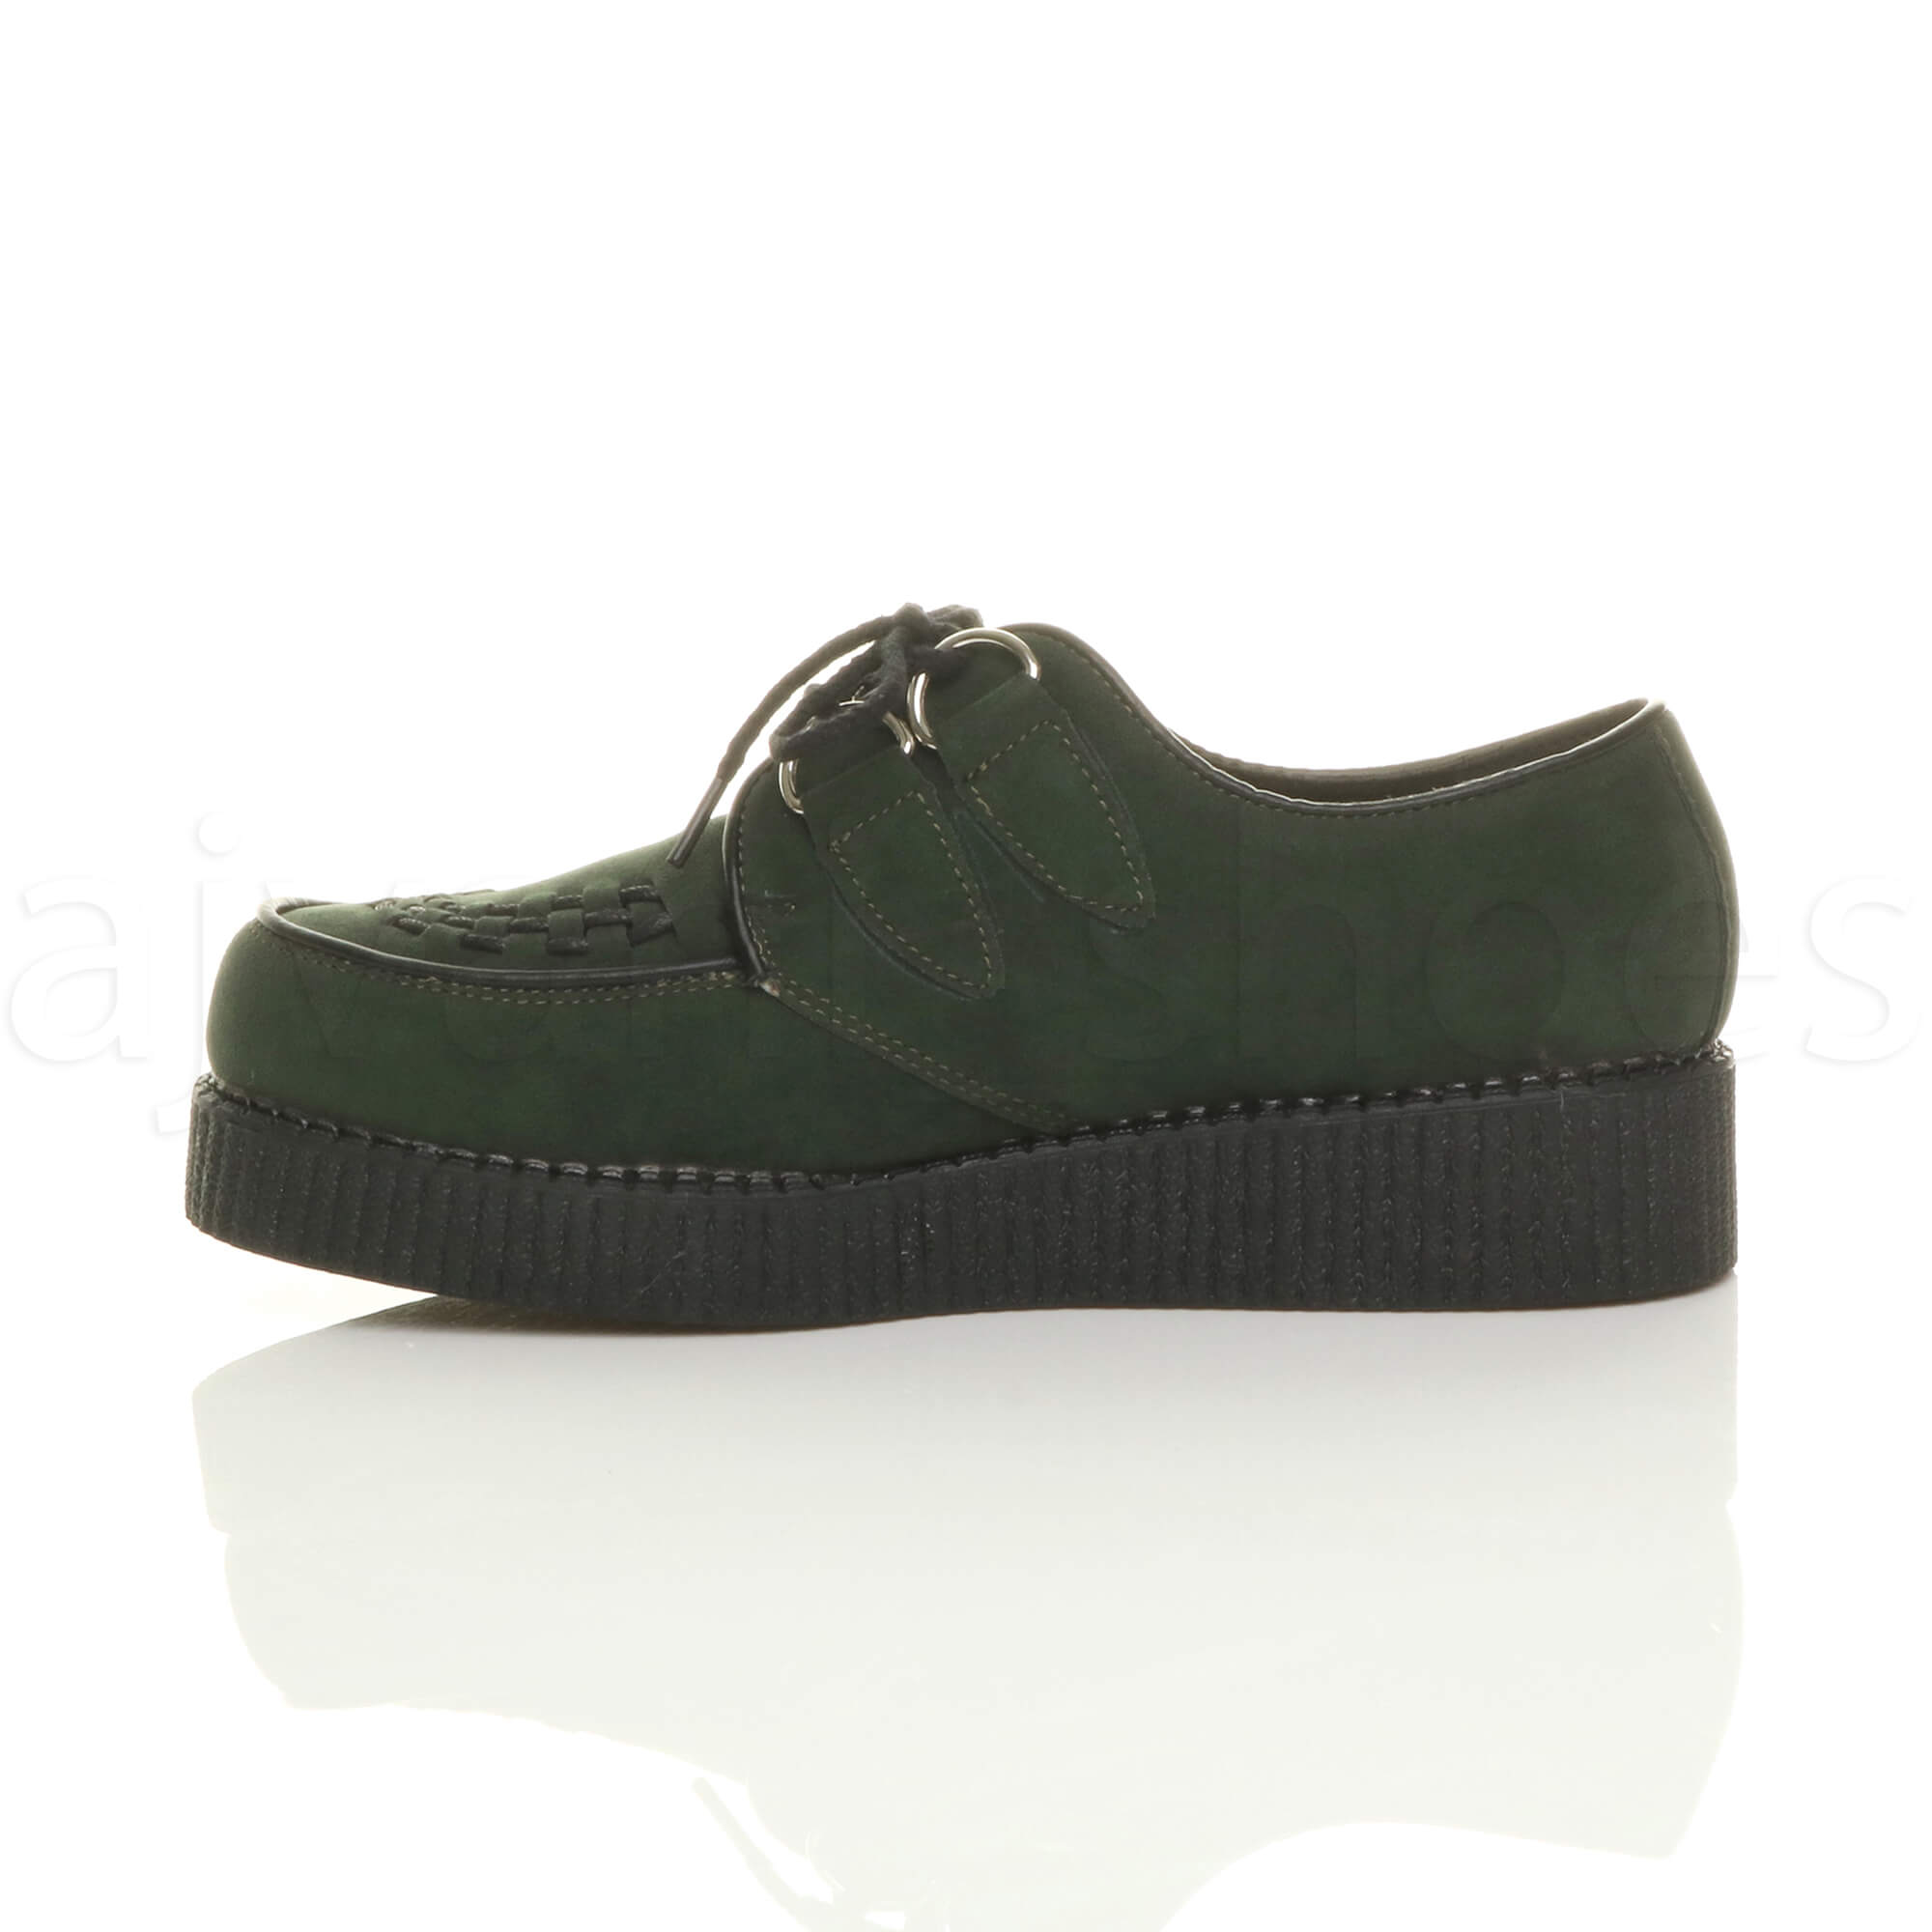 MENS-PLATFORM-WEDGE-LACE-UP-GOTH-PUNK-BROTHEL-CREEPERS-BEETLE-CRUSHERS-SHOES